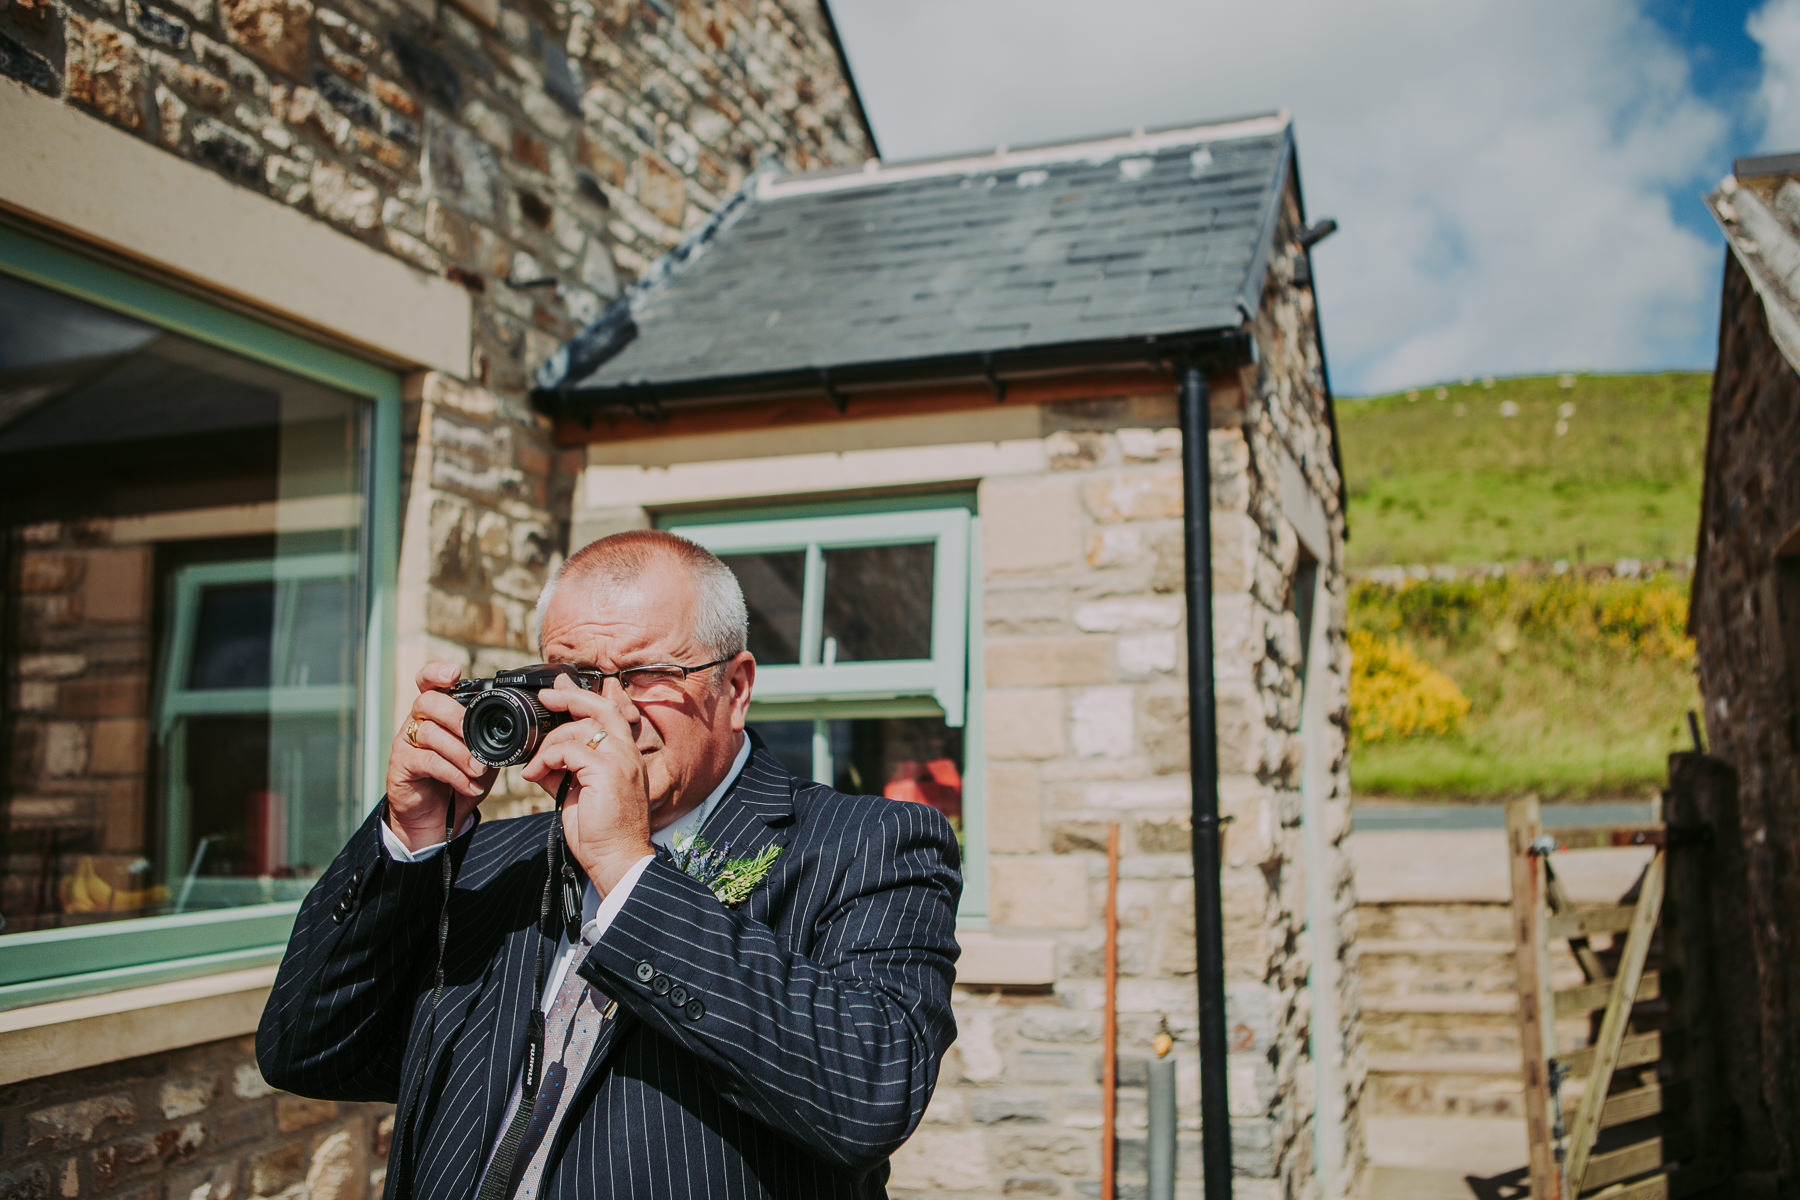 Natalie & Will | County Durham Wedding 255